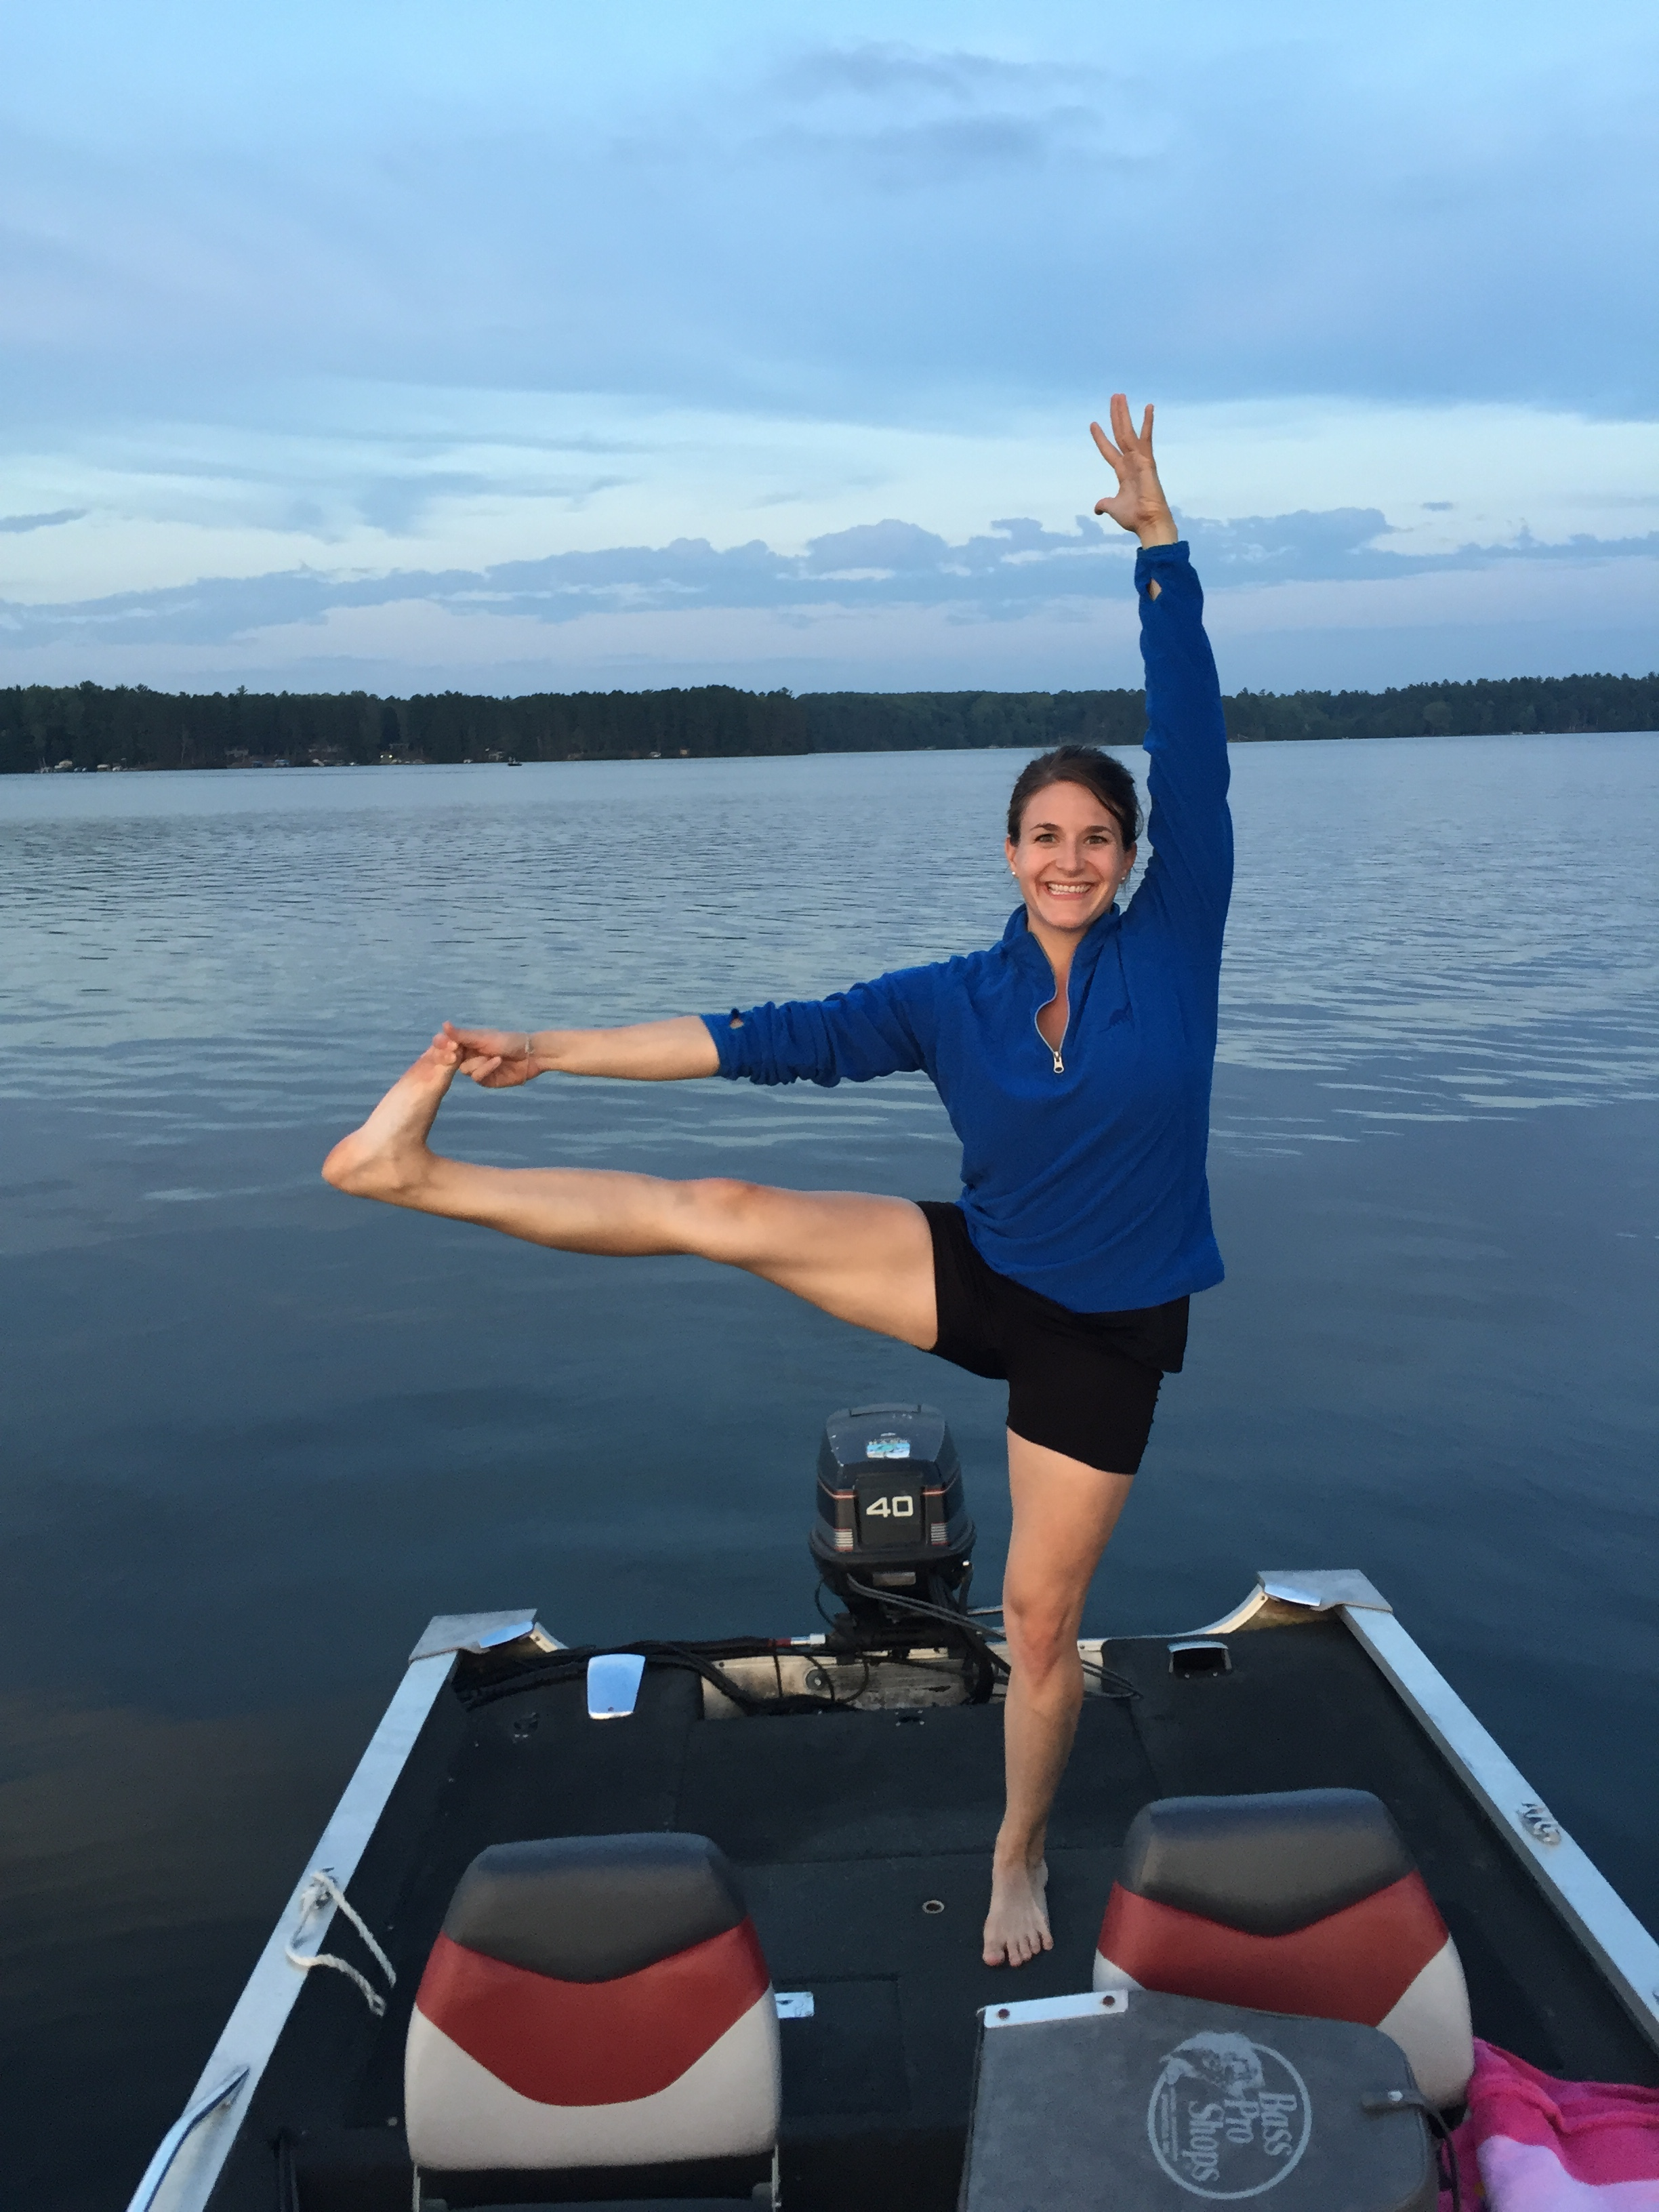 Lauren fitting in her yoga even on the lake!